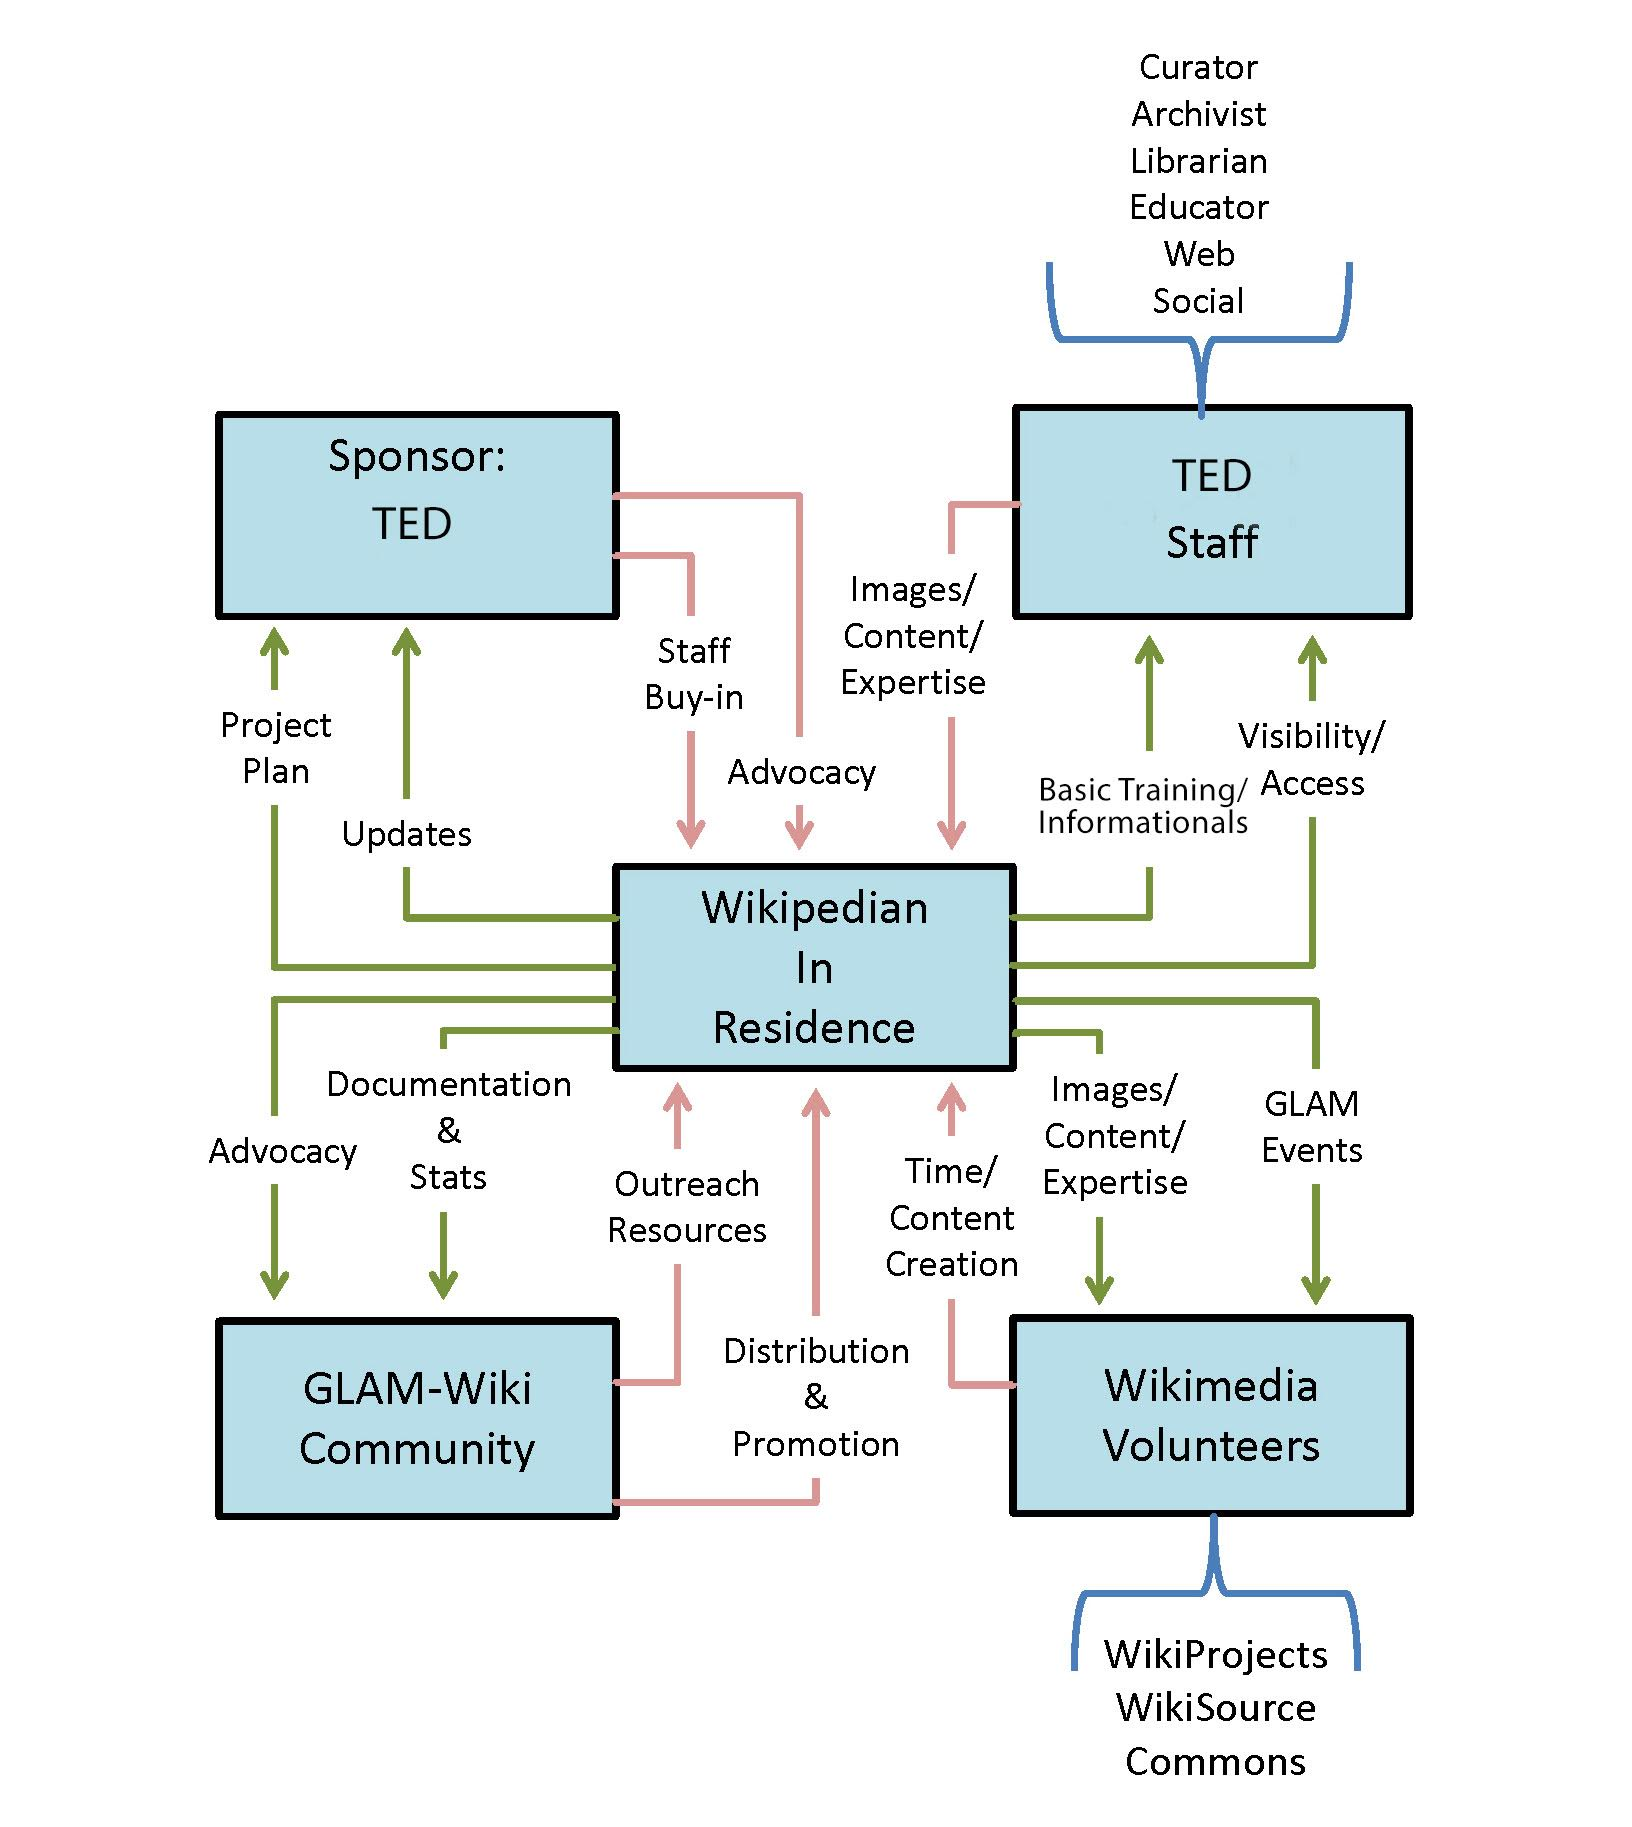 A diagram of the TED's GLAM-Wikimedia partnership.